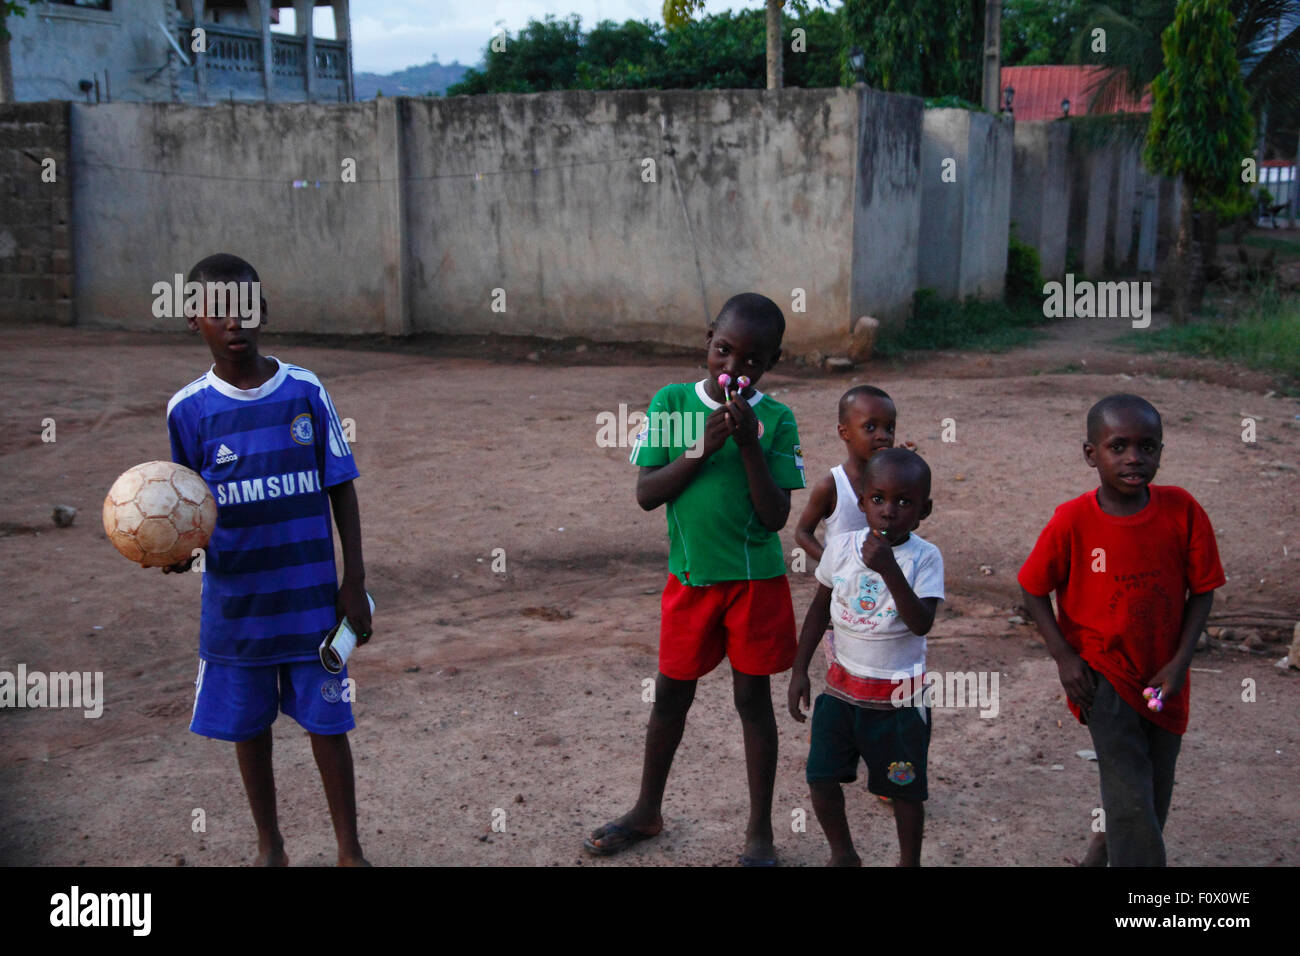 0460b0323 Nigerian boys with football uniforms, stand up for a portrait in a local  village at